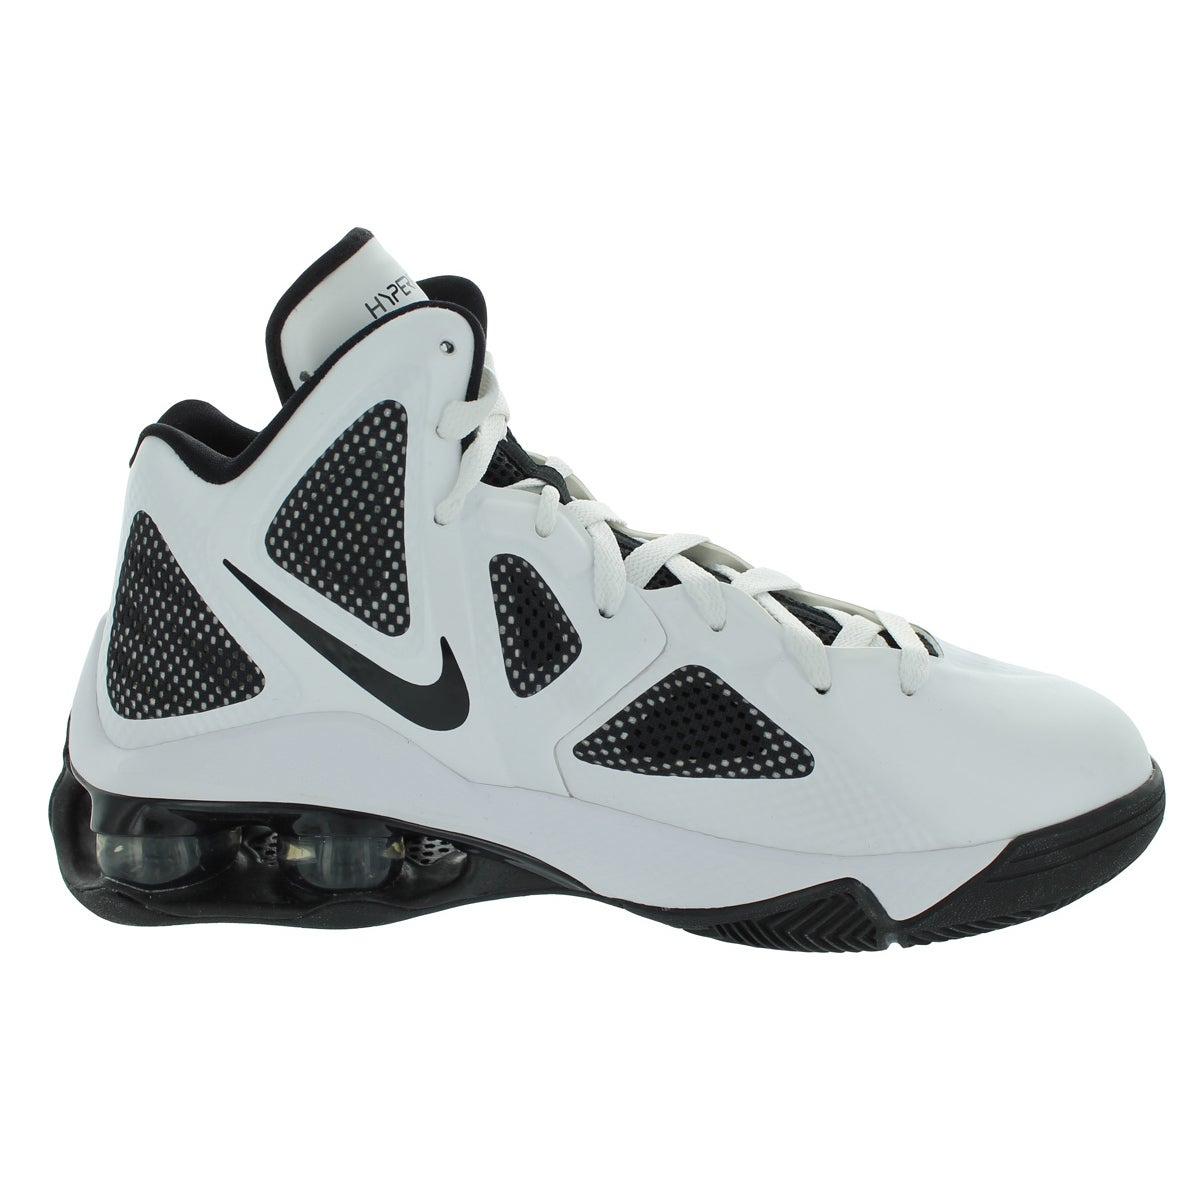 best sneakers 8c110 067da Shop Nike Shox Air Hyperballer Tb Basketball Shoes (White Black) - Free  Shipping Today - Overstock - 12328216